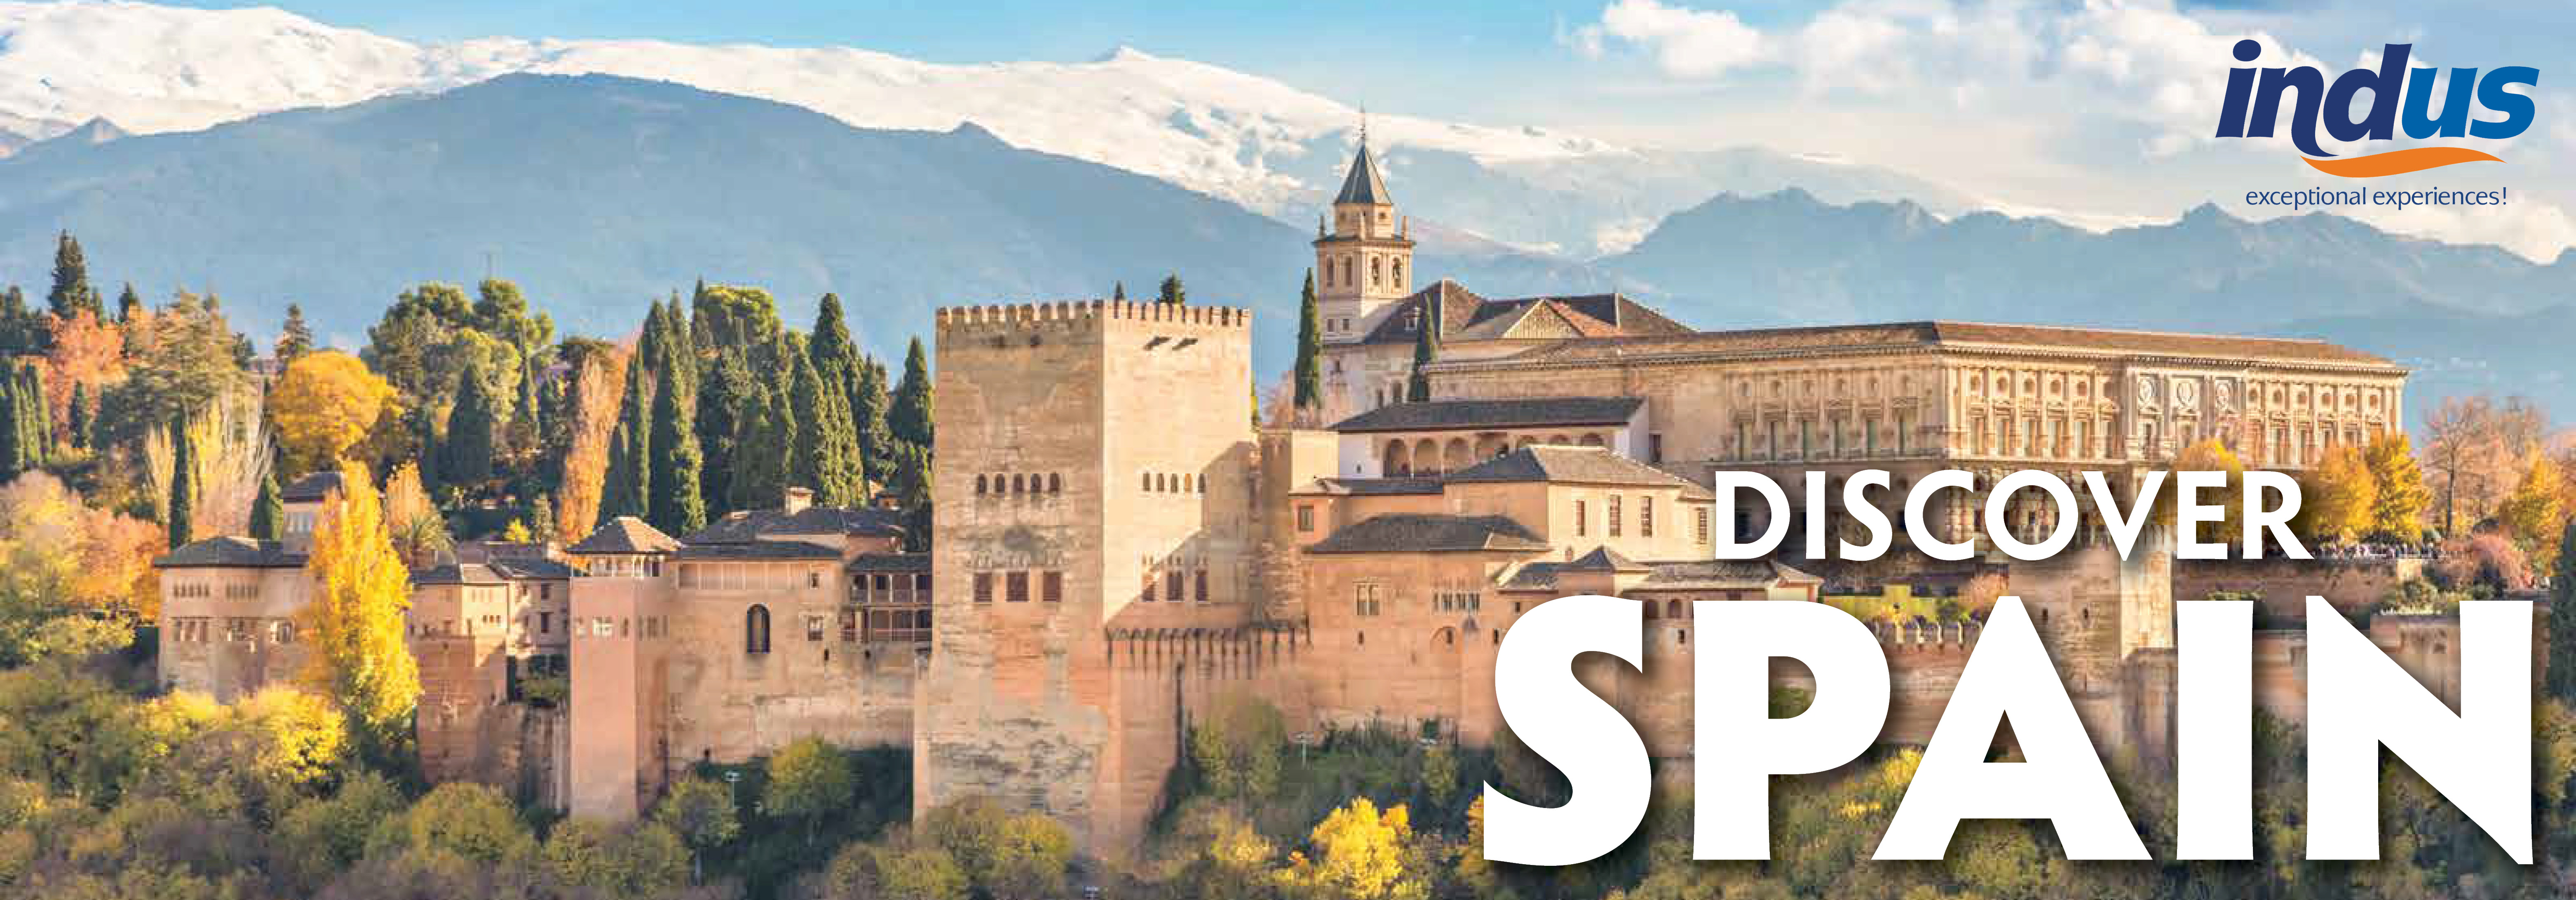 Discover Spain with the Regional Chamber